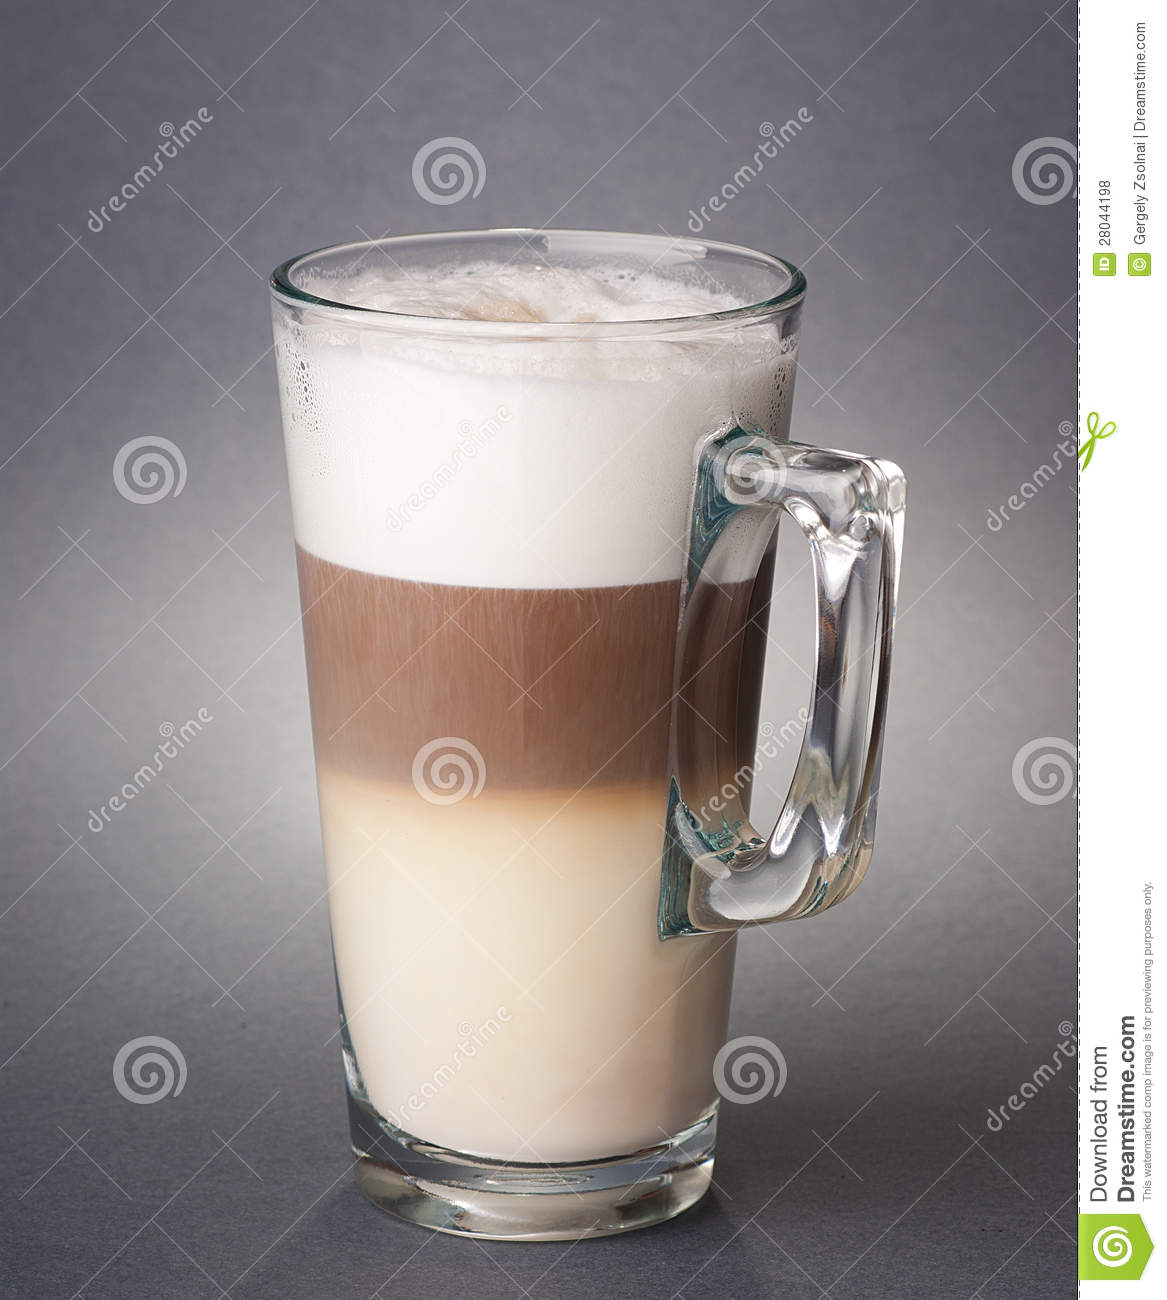 glass of latte macchiato on the gray background royalty free stock photos image 28044198. Black Bedroom Furniture Sets. Home Design Ideas